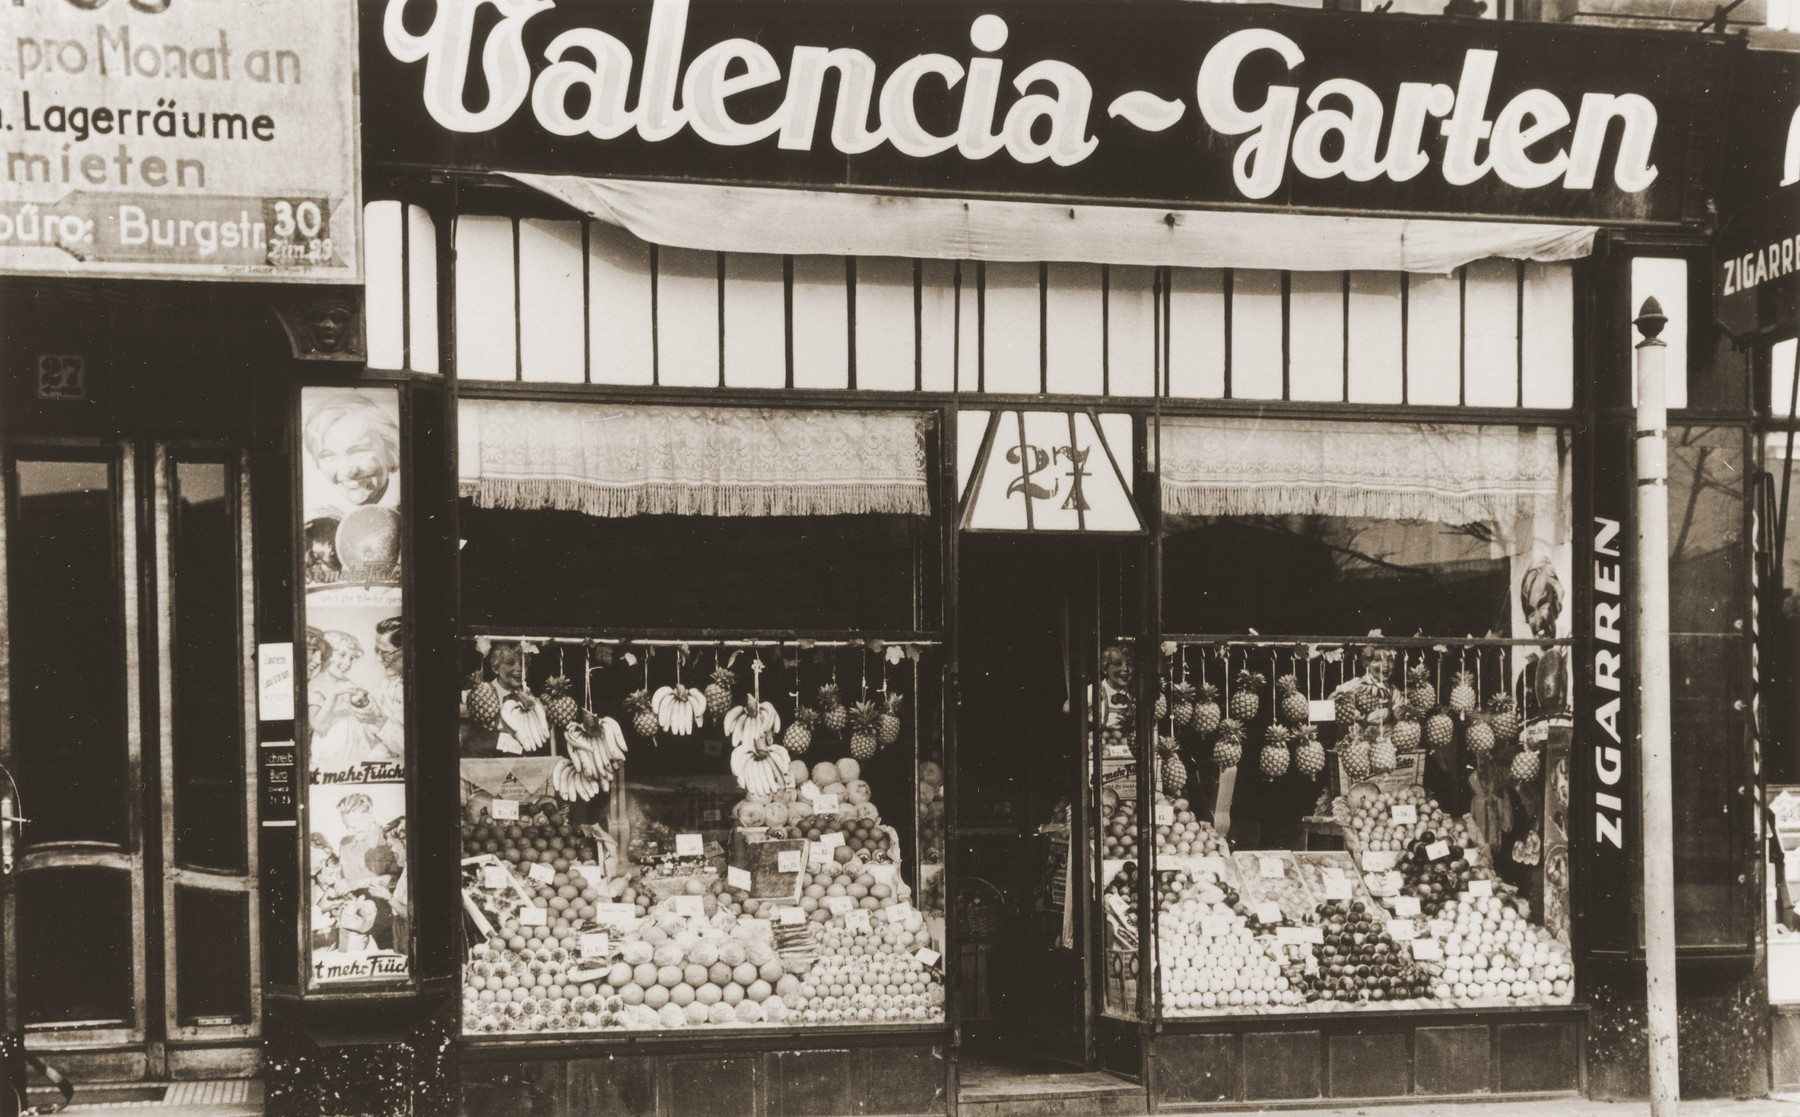 Exterior view of the Valencia-Garten, a gourmet shop on the Neue Friedrichstrasse in Berlin, owned by the donor's aunt, Gitta Schadur, a Jewish emigre from Riga.